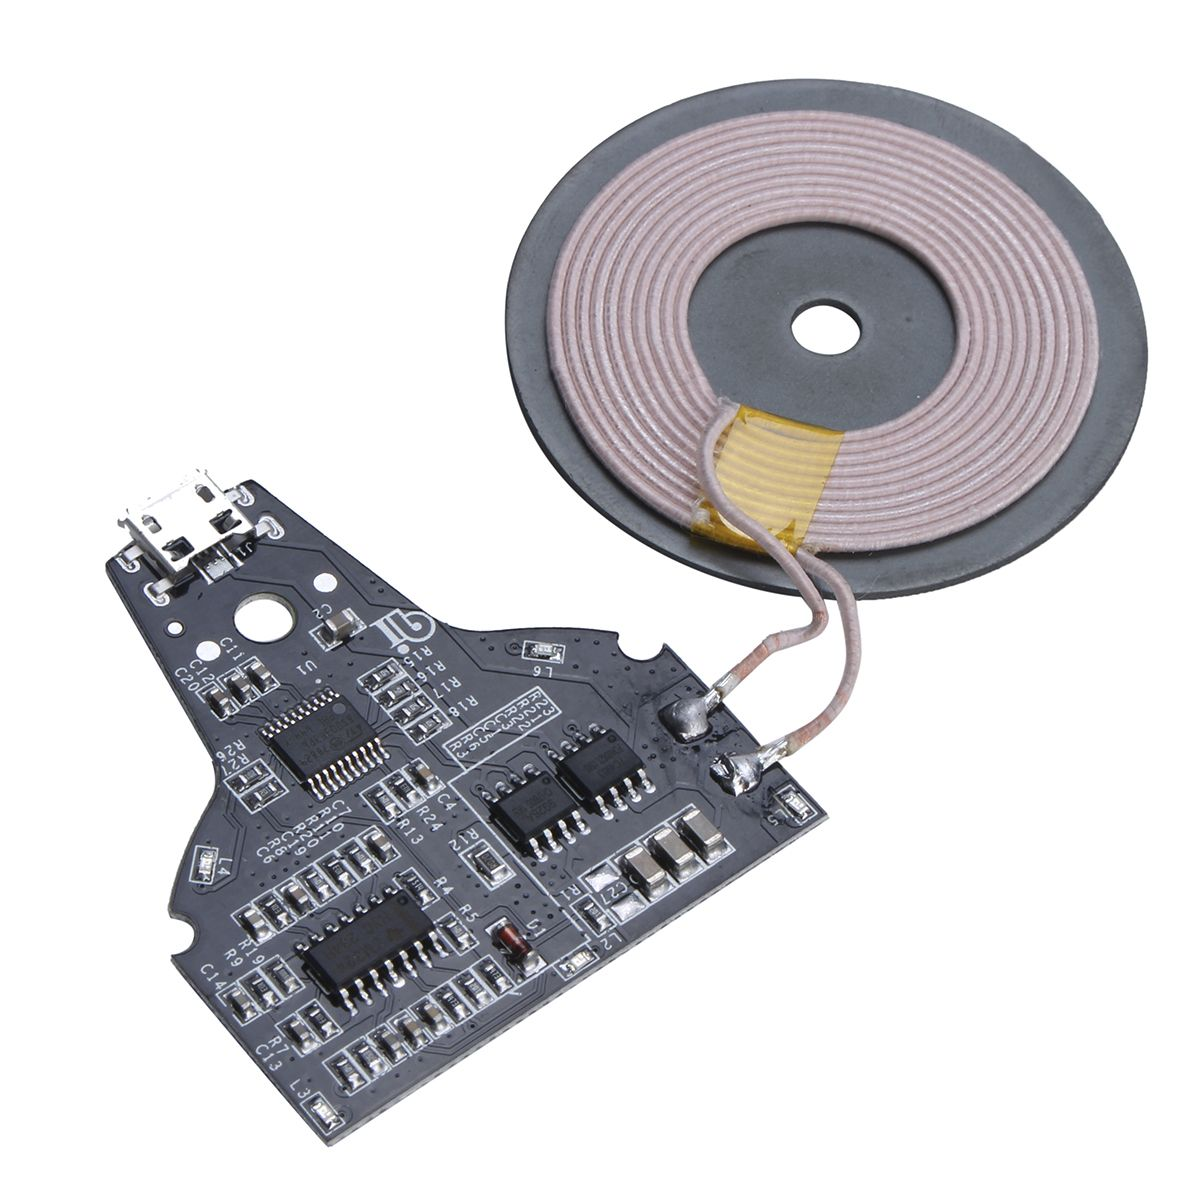 5V 2A Micro USB Qi Standard Wireless Phone Charger PCB Circuit Board ...